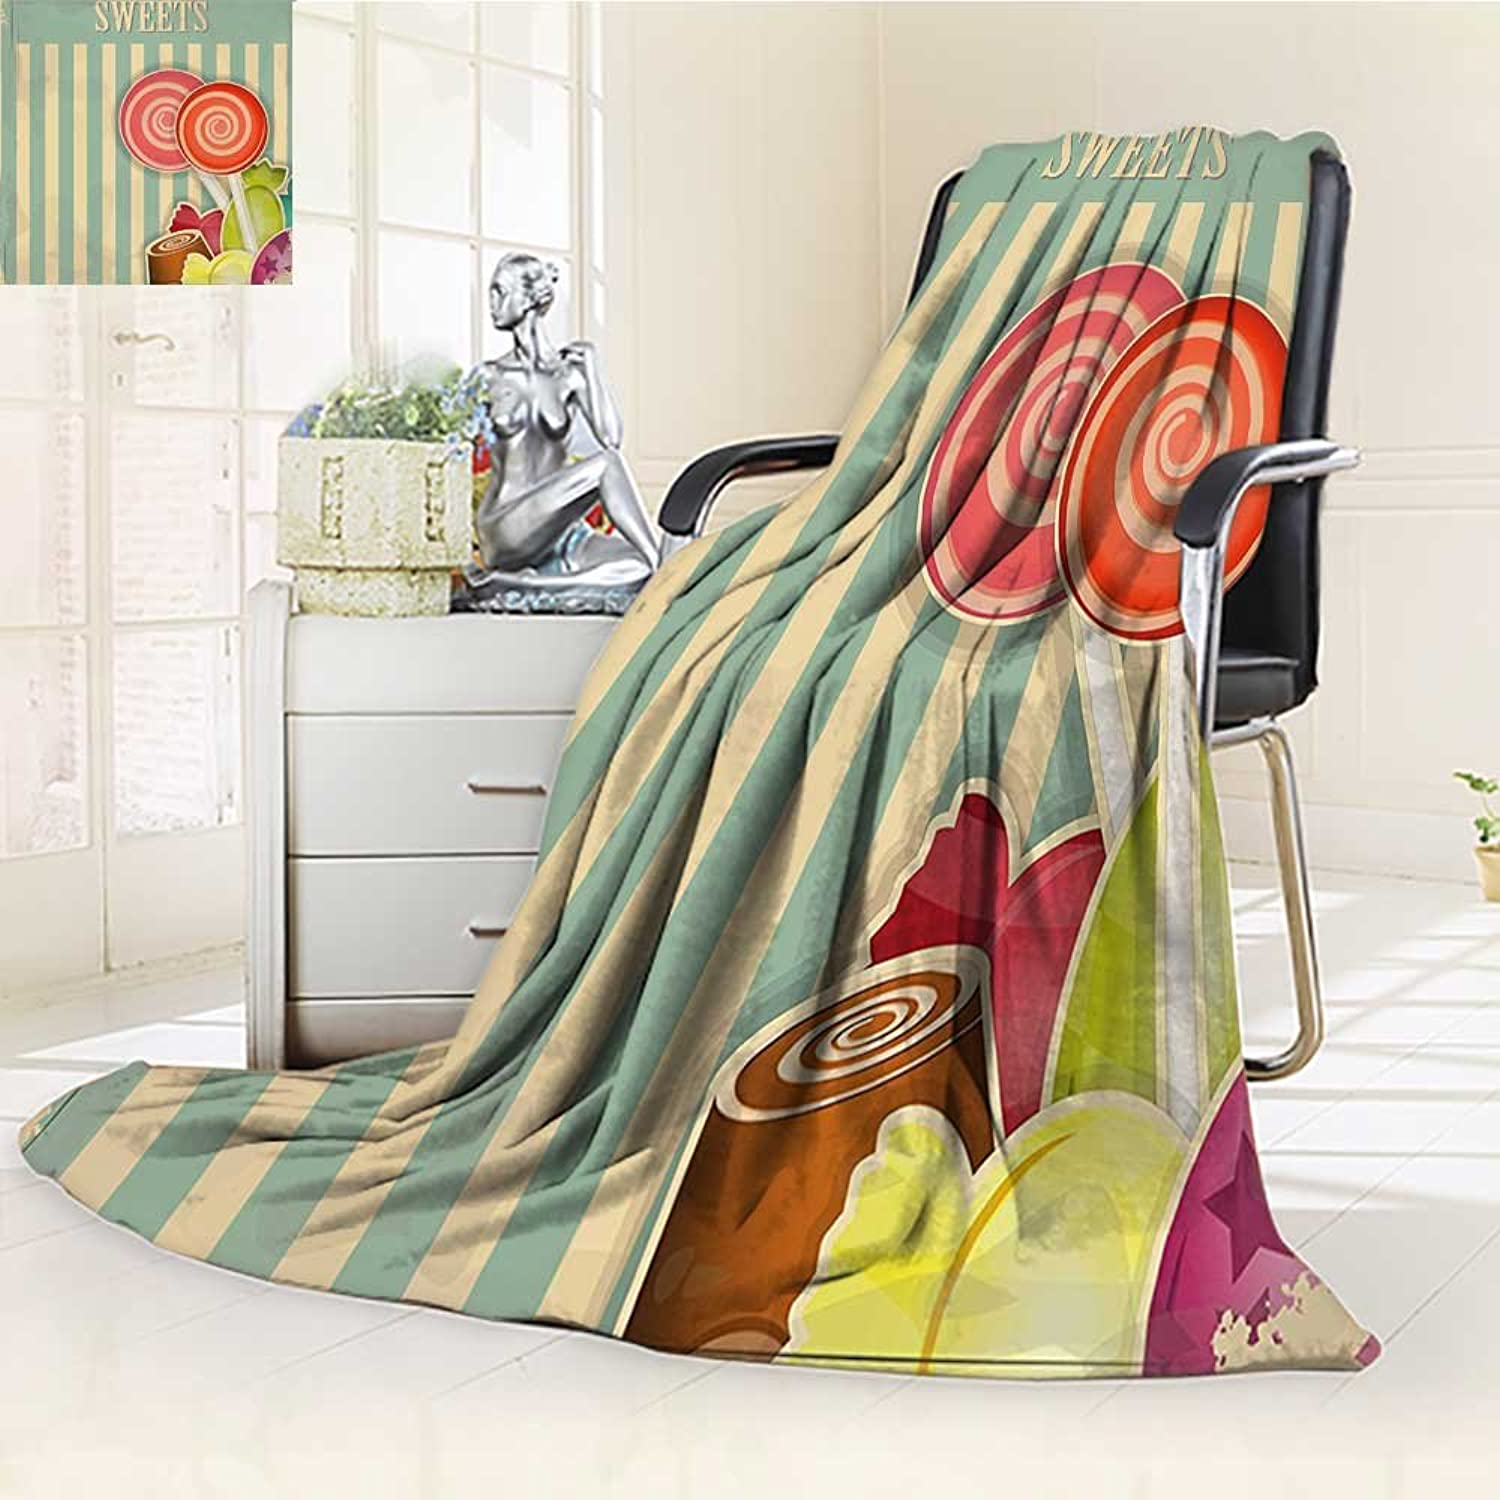 YOYIHOME Lightweight Summer Duplex Printed Blanket,Candy Store Chocolates Lollipops with White Stripes on Baby bluee Backdrop Multicolor Bed,Sofa, AirConditioner Room  W47 x H59